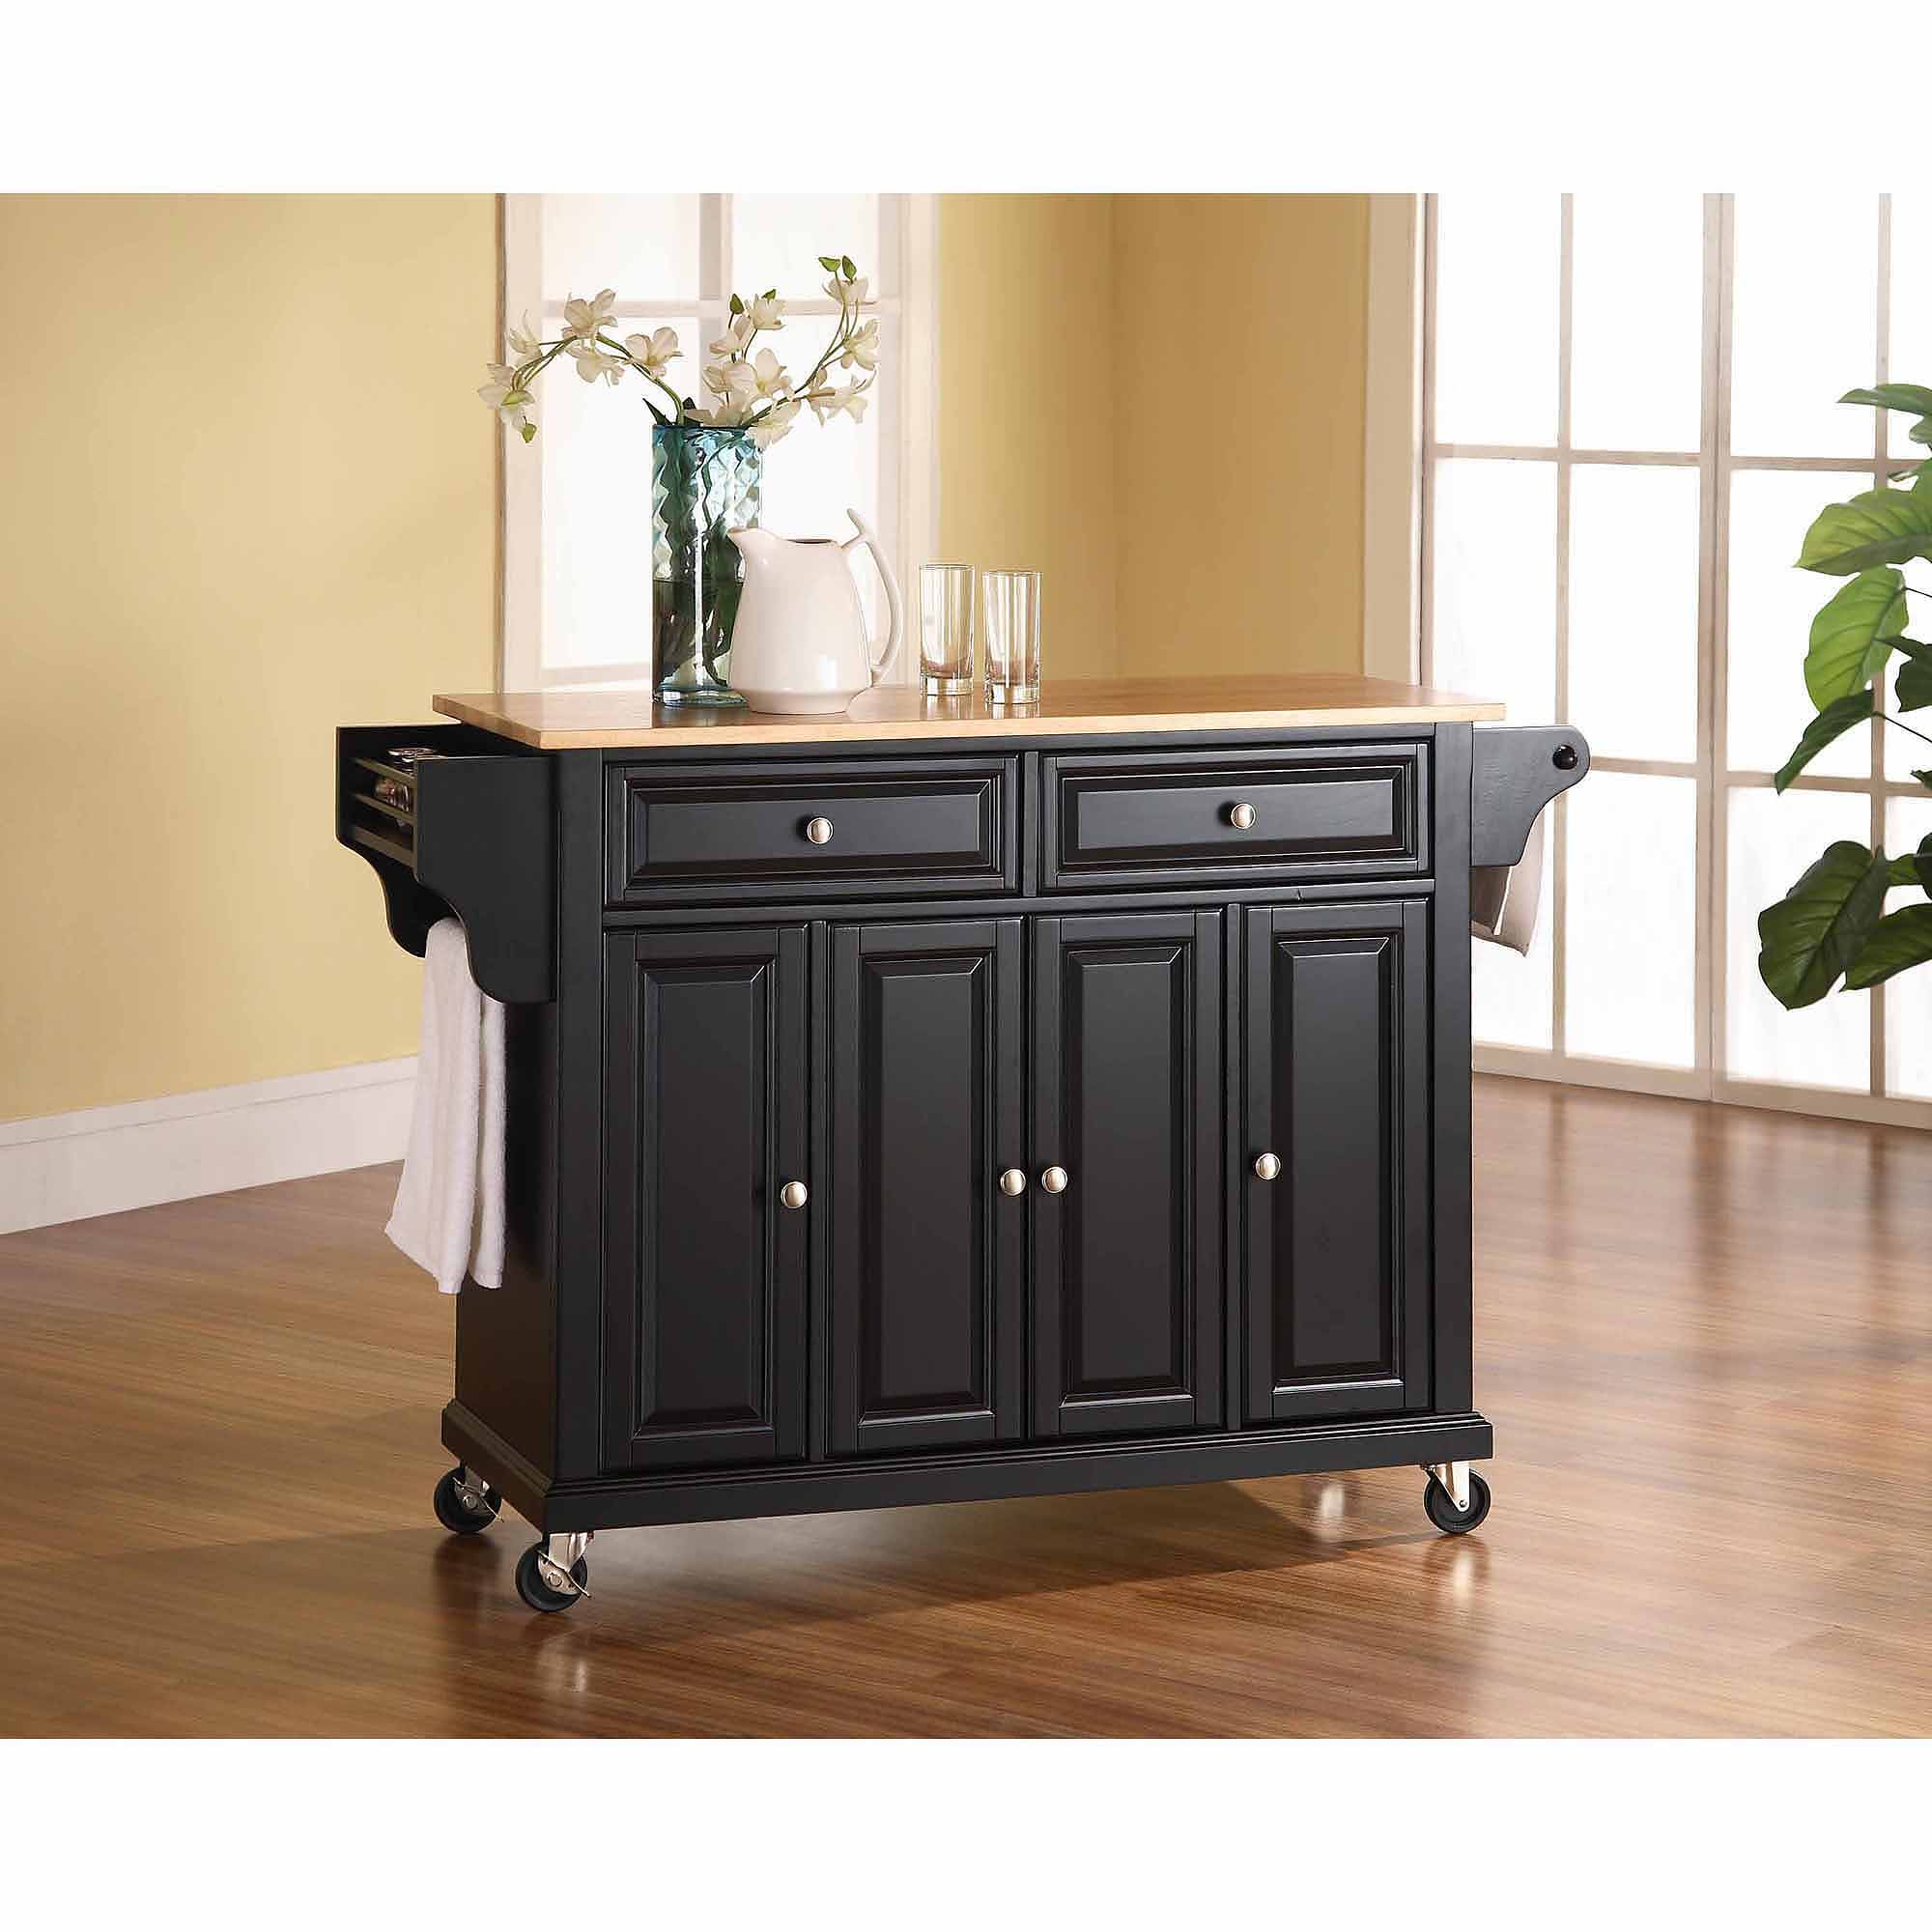 Crosley Furniture Natural Wood Top Kitchen Cart   Walmart.com